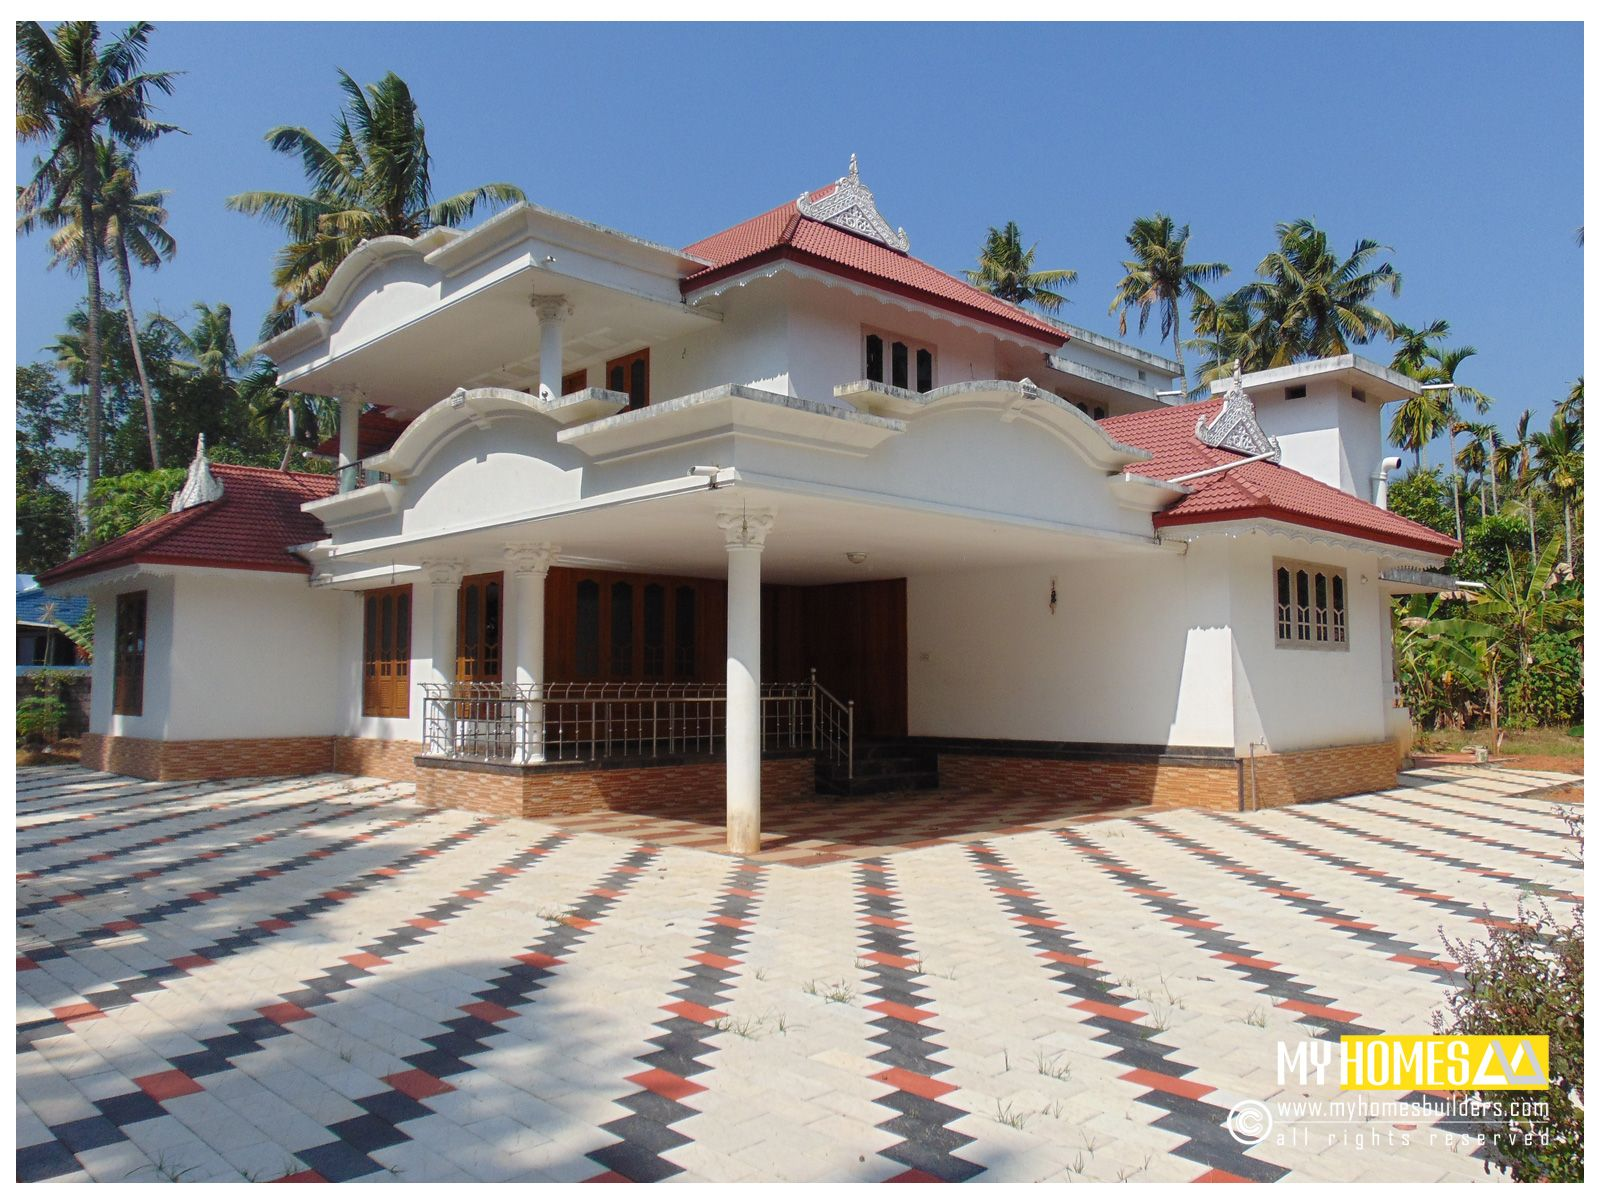 Traditional Style Kerala Homes Designs Kerala Traditional Home Designs From  My Homes Designers And Builders.